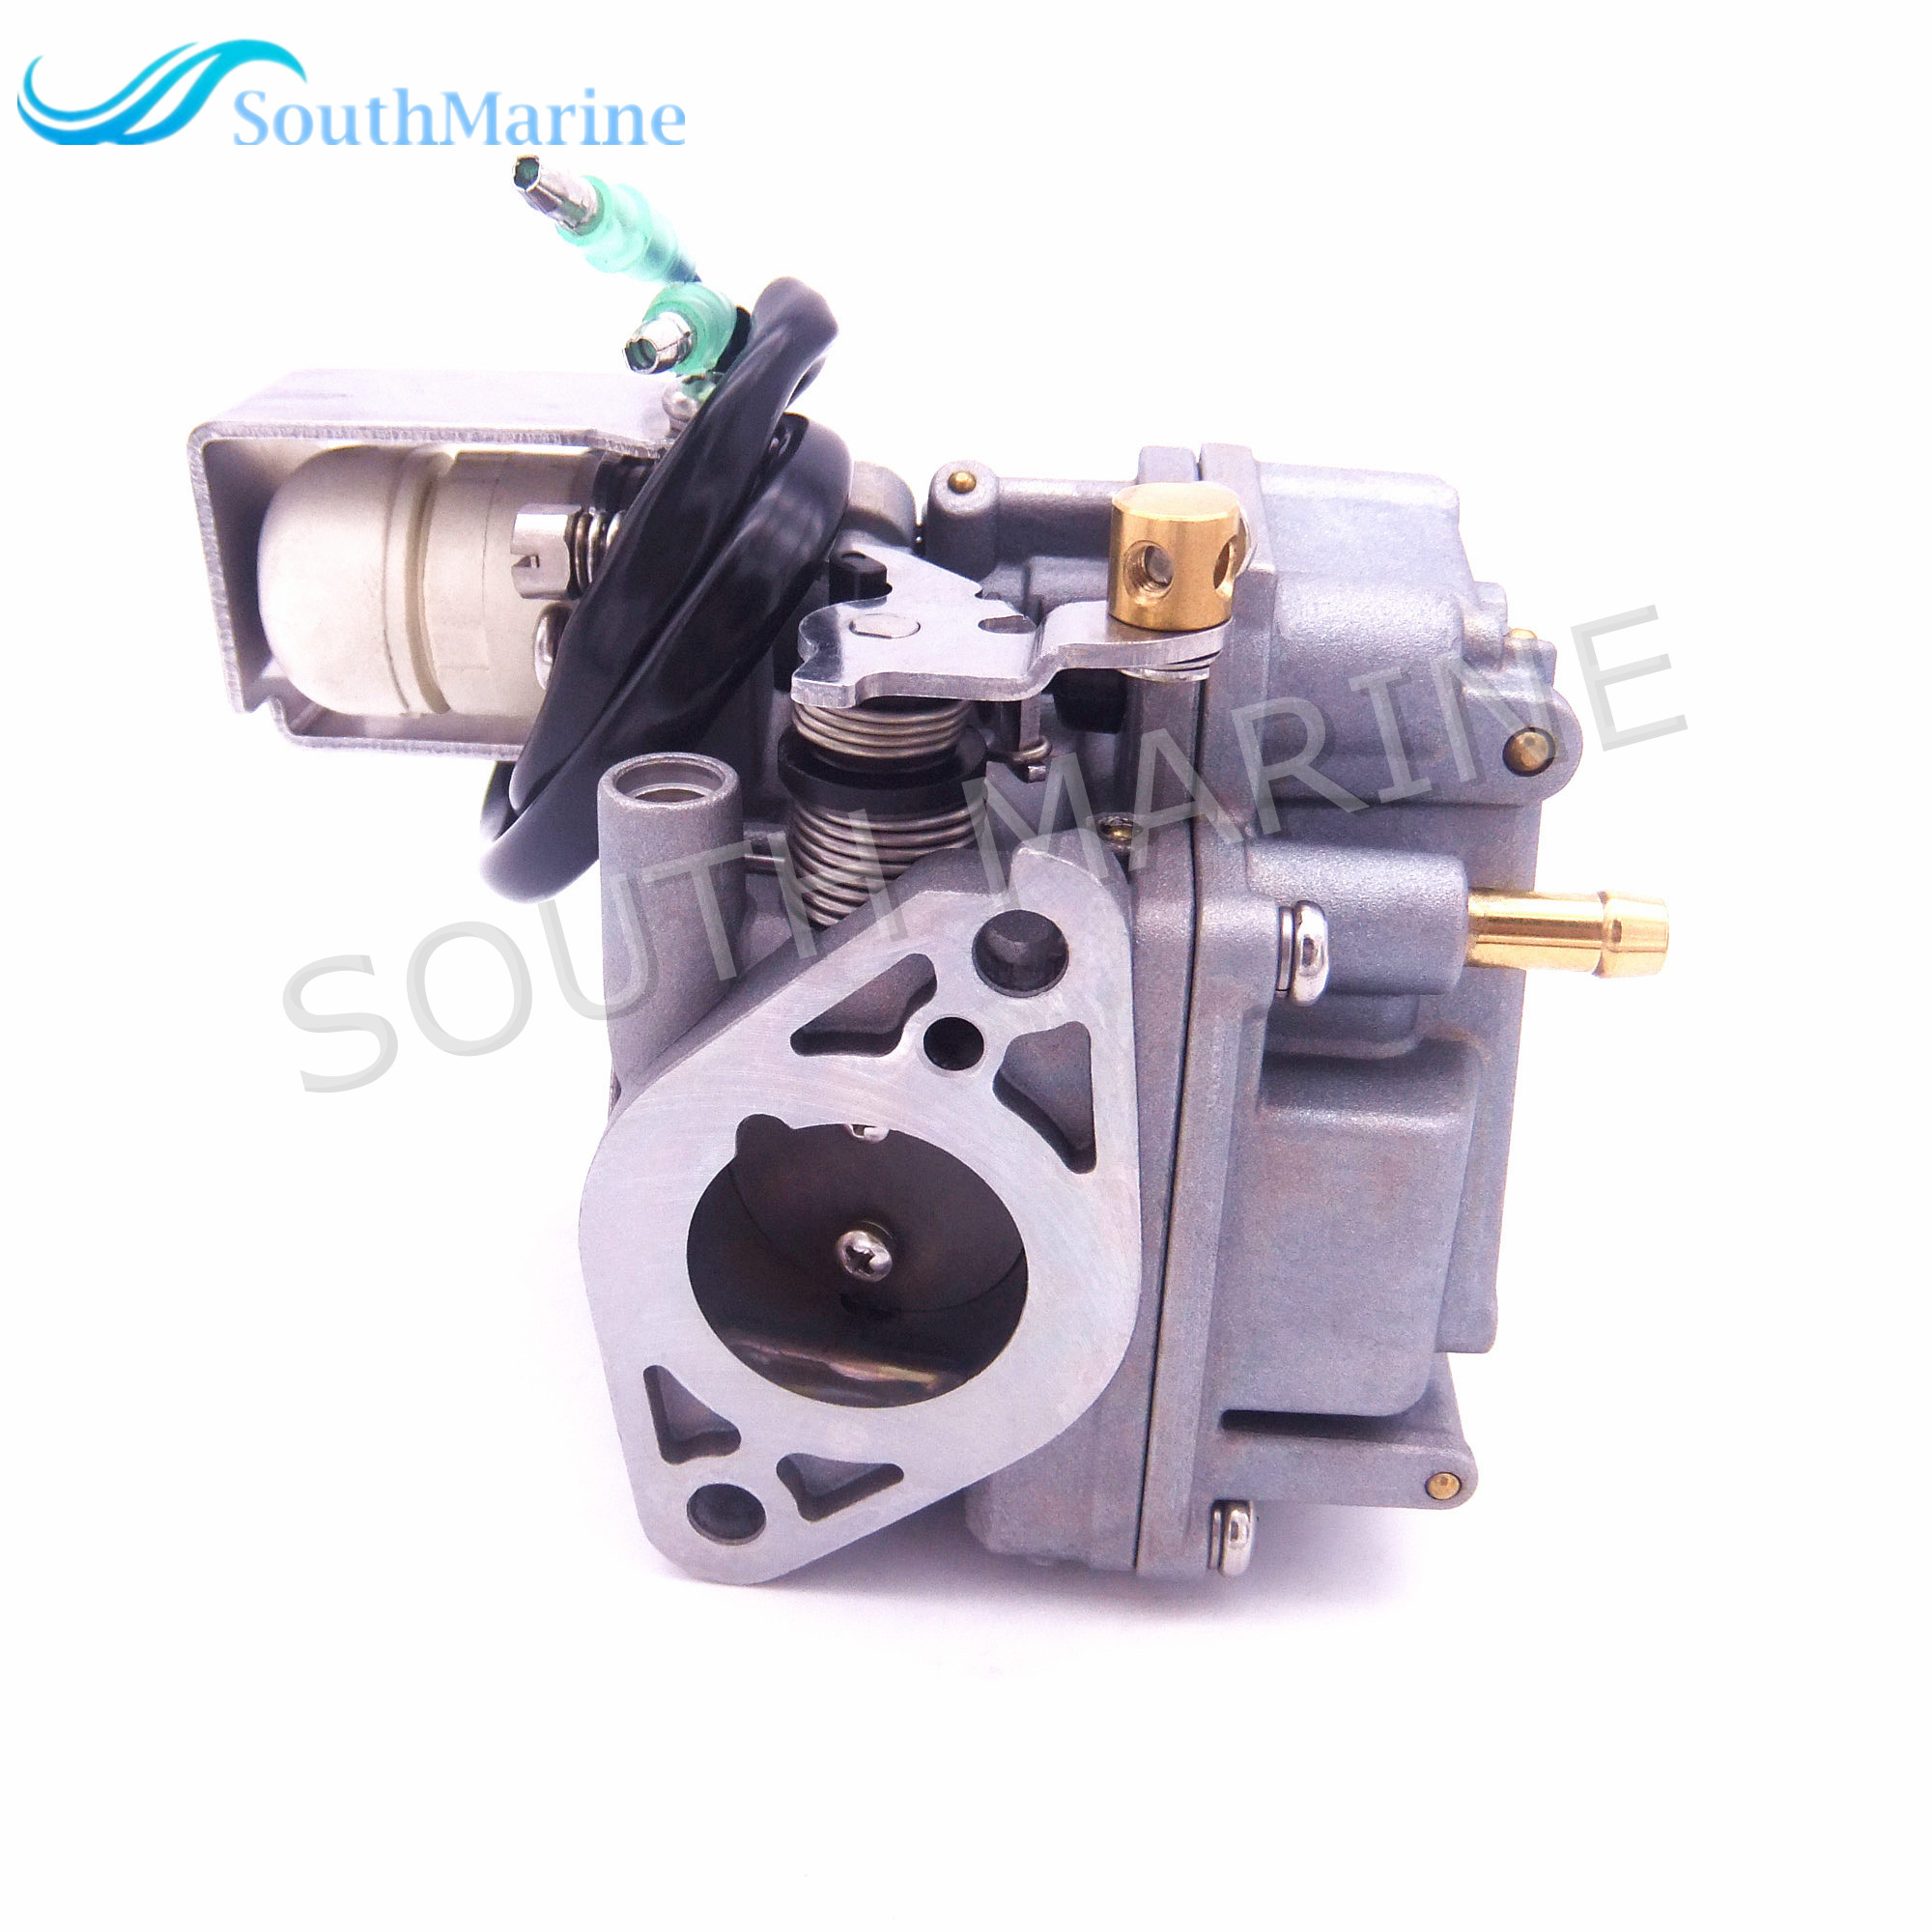 Boat Motor Carburetor Assy F20-05080000 for Parsun 4-stroke F20A F15A Outboard Engine лодочный мотор parsun tc3 6bms